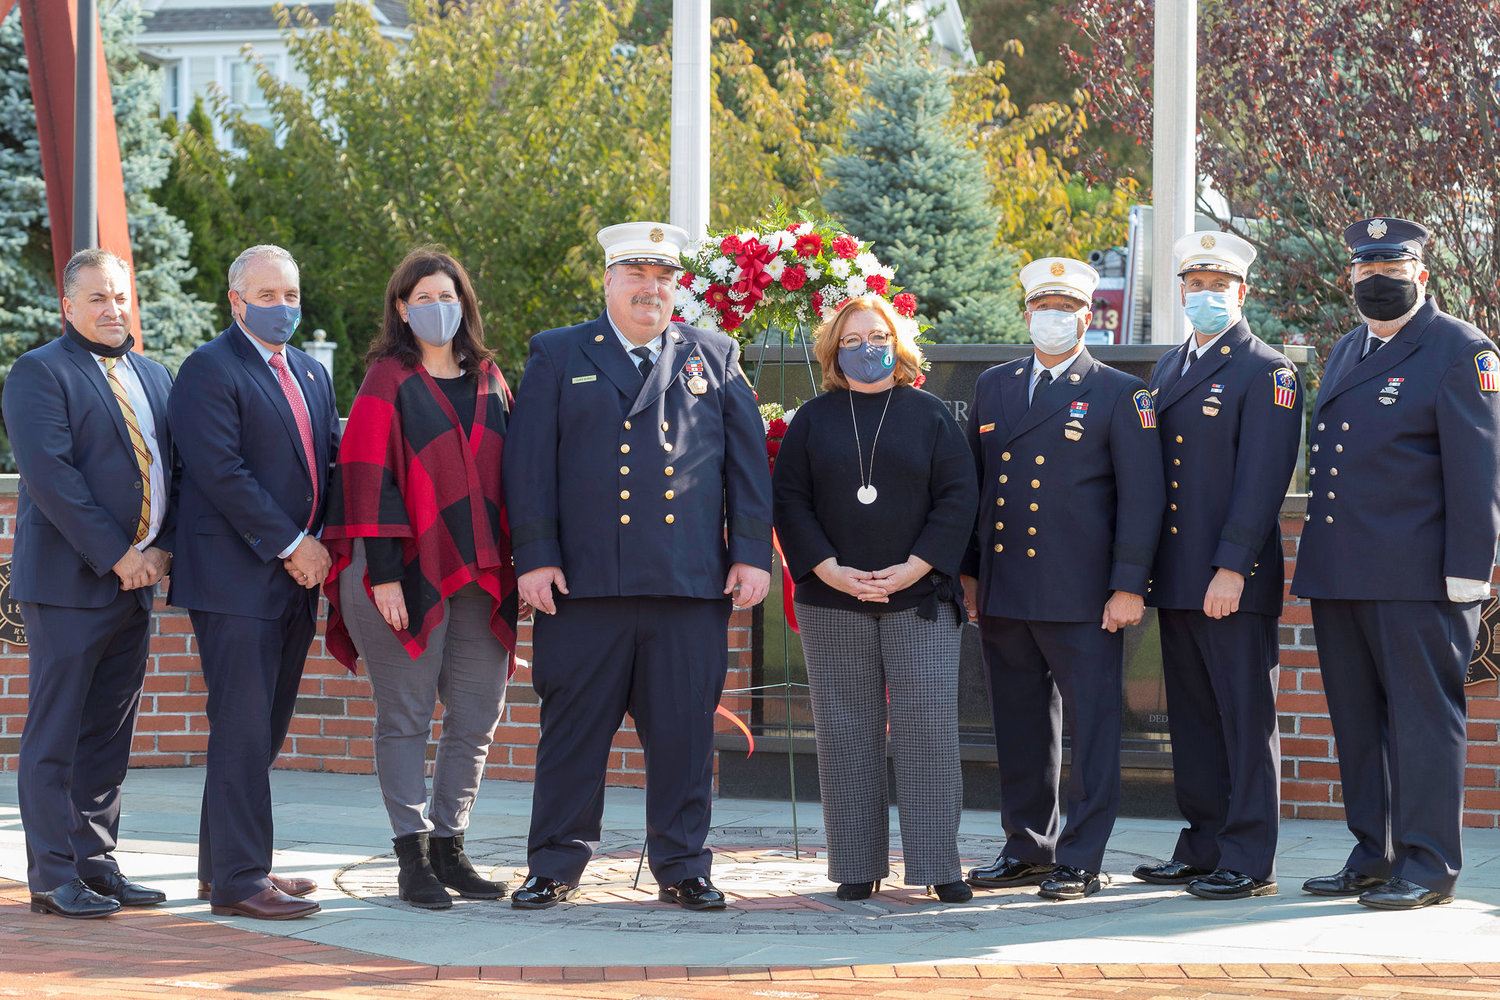 Rockville Centre Fire Chief Eric Burel, fourth from left, with Trustee Emilio Grillo, Trustee Michael Sepe, Deputy Mayor Kathy Baxley, Trustee Nancy Howard, First Assistant Chief James Avondet, Second Assistant Chief Scott Mohr, and Mayor Francis X. Murray.